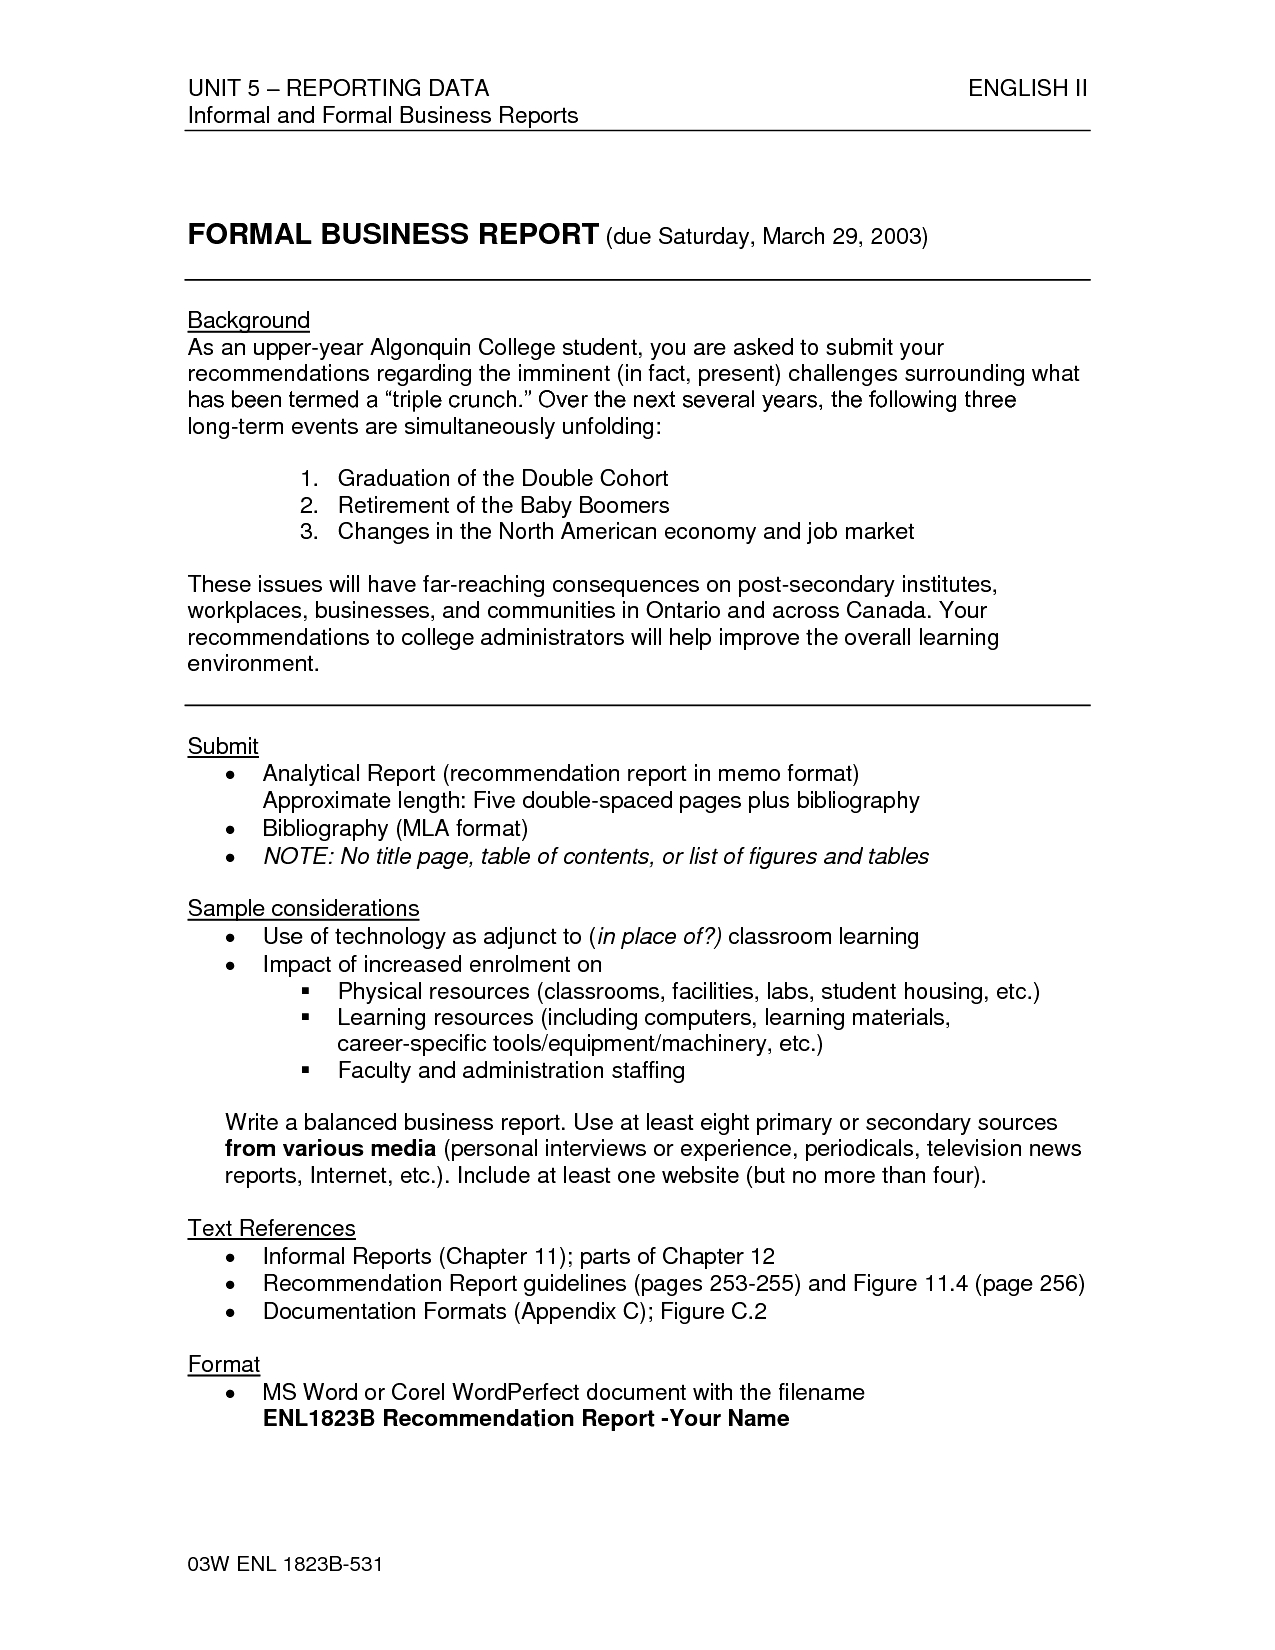 Business report format example erkalnathandedecker formal business report format example examples and forms accmission Choice Image